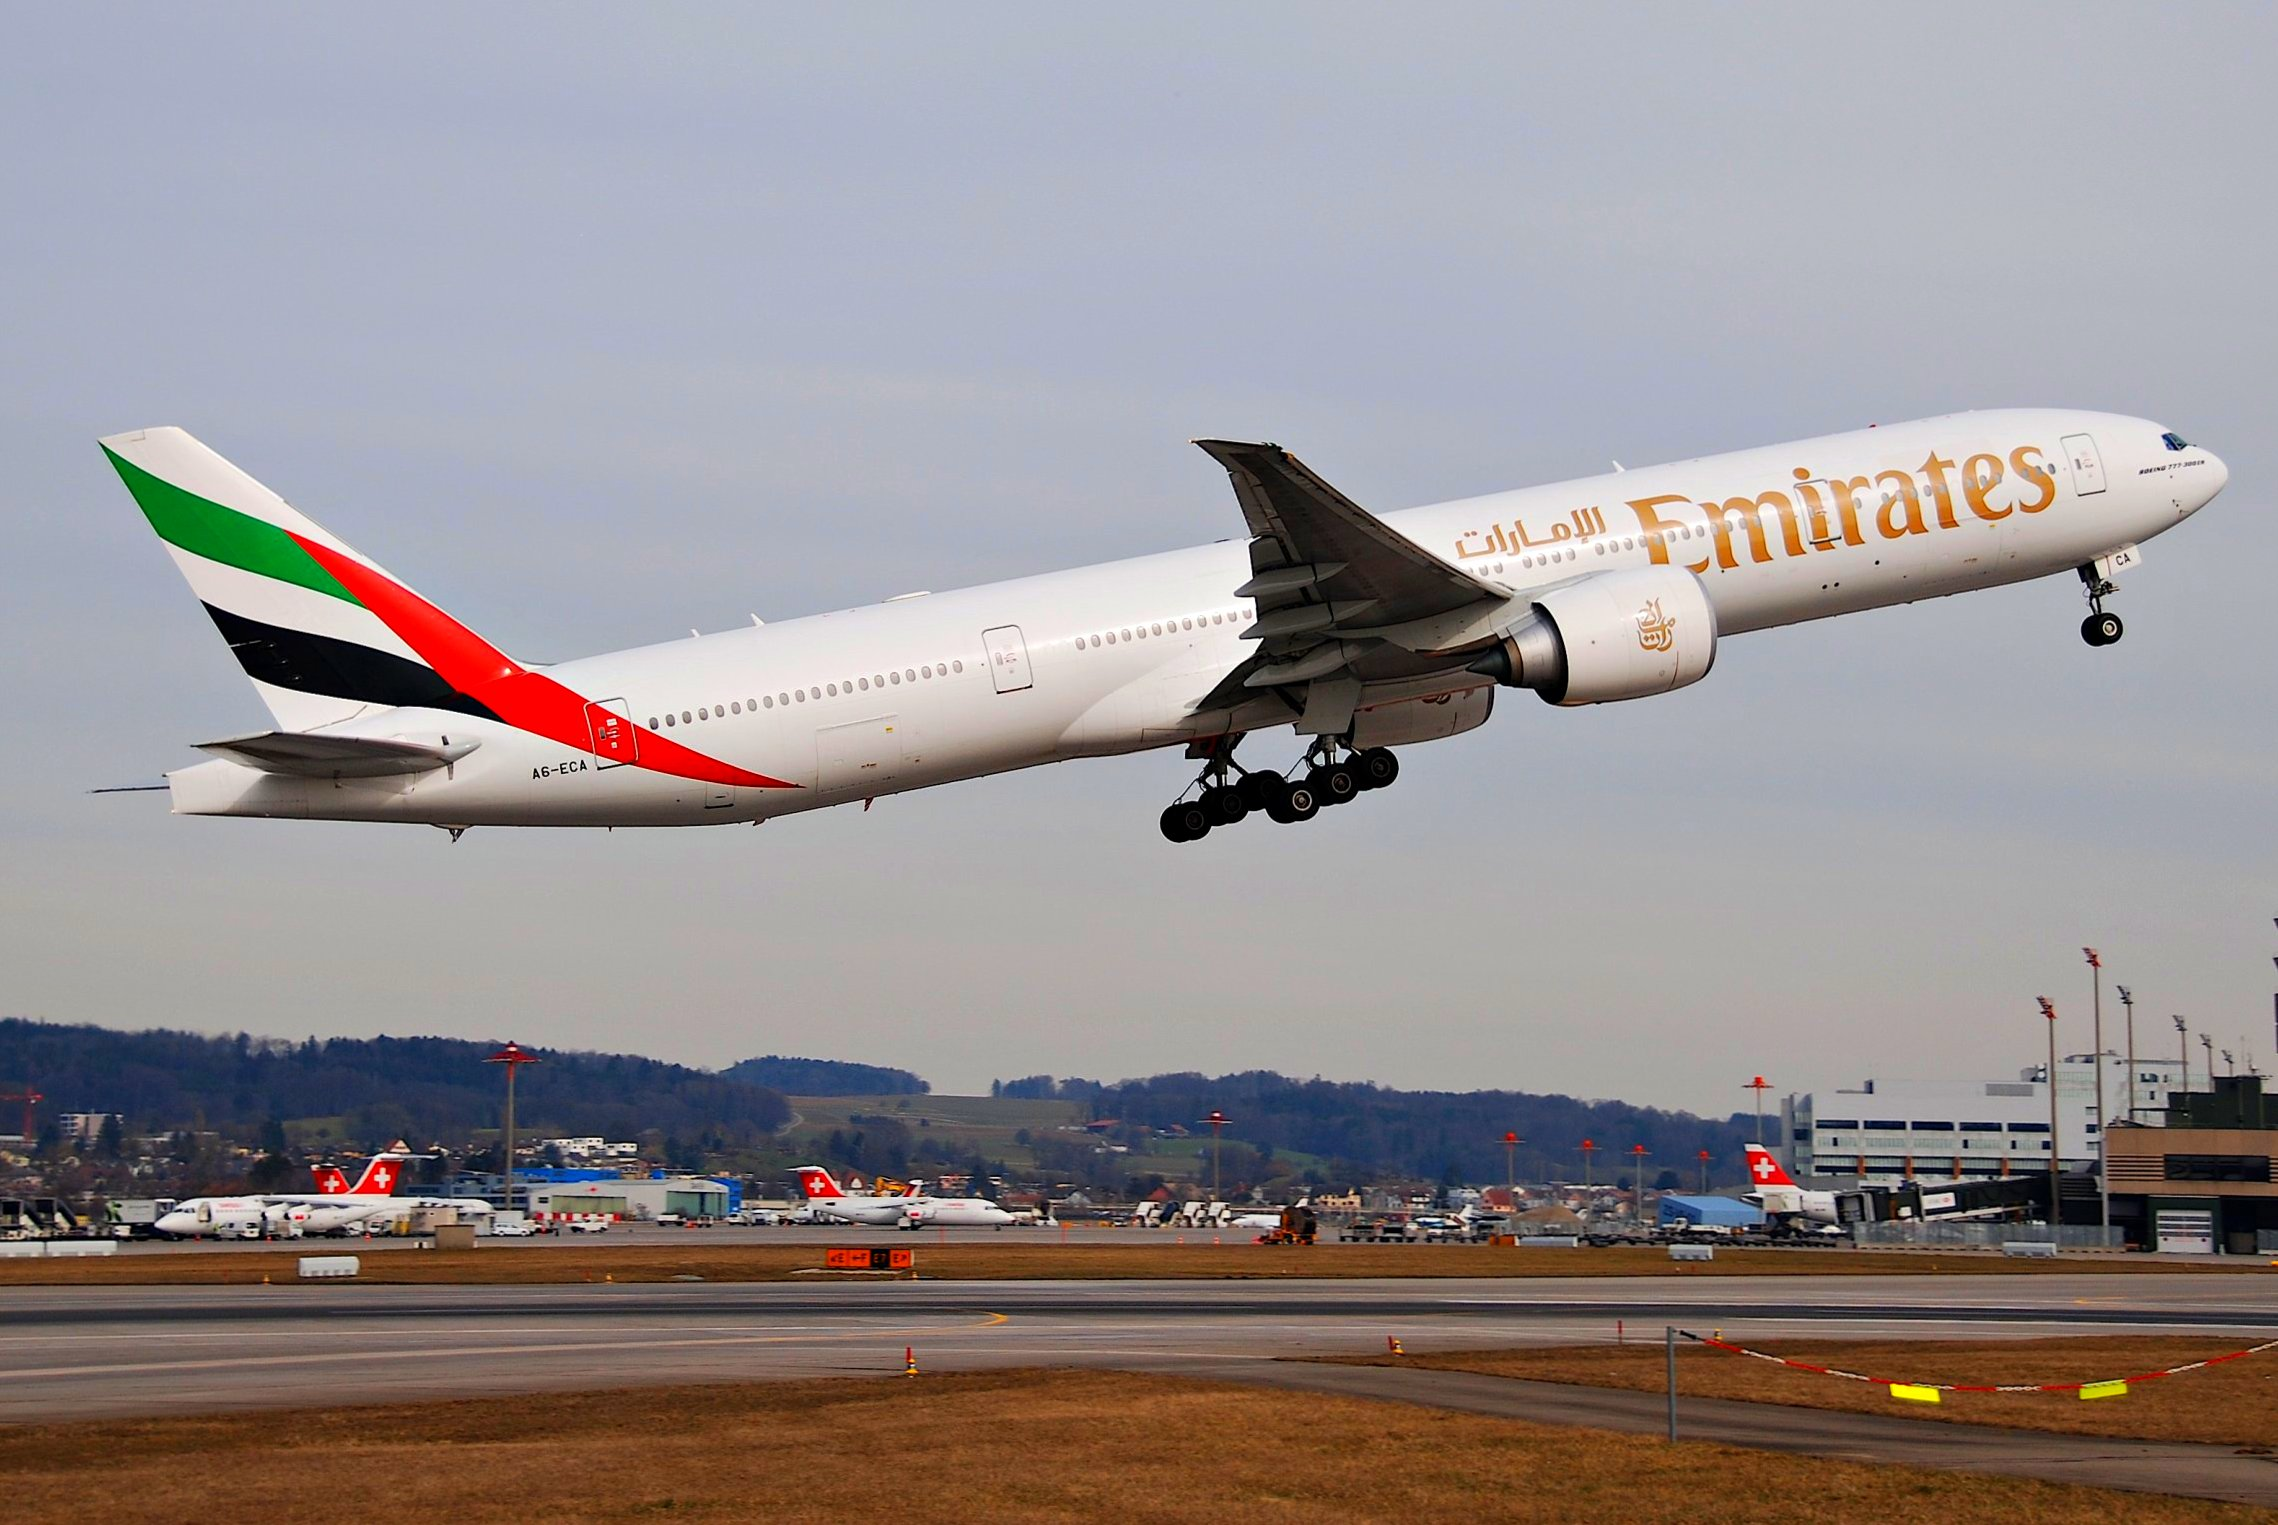 Emirates Boeing 777-300ER; A6-ECA@ZRH;18.03.2010/567ak par Aero Icarus sous (CC BY-SA 2.0) https://www.flickr.com/photos/aero_icarus/4443481397/ https://creativecommons.org/licenses/by-sa/2.0/